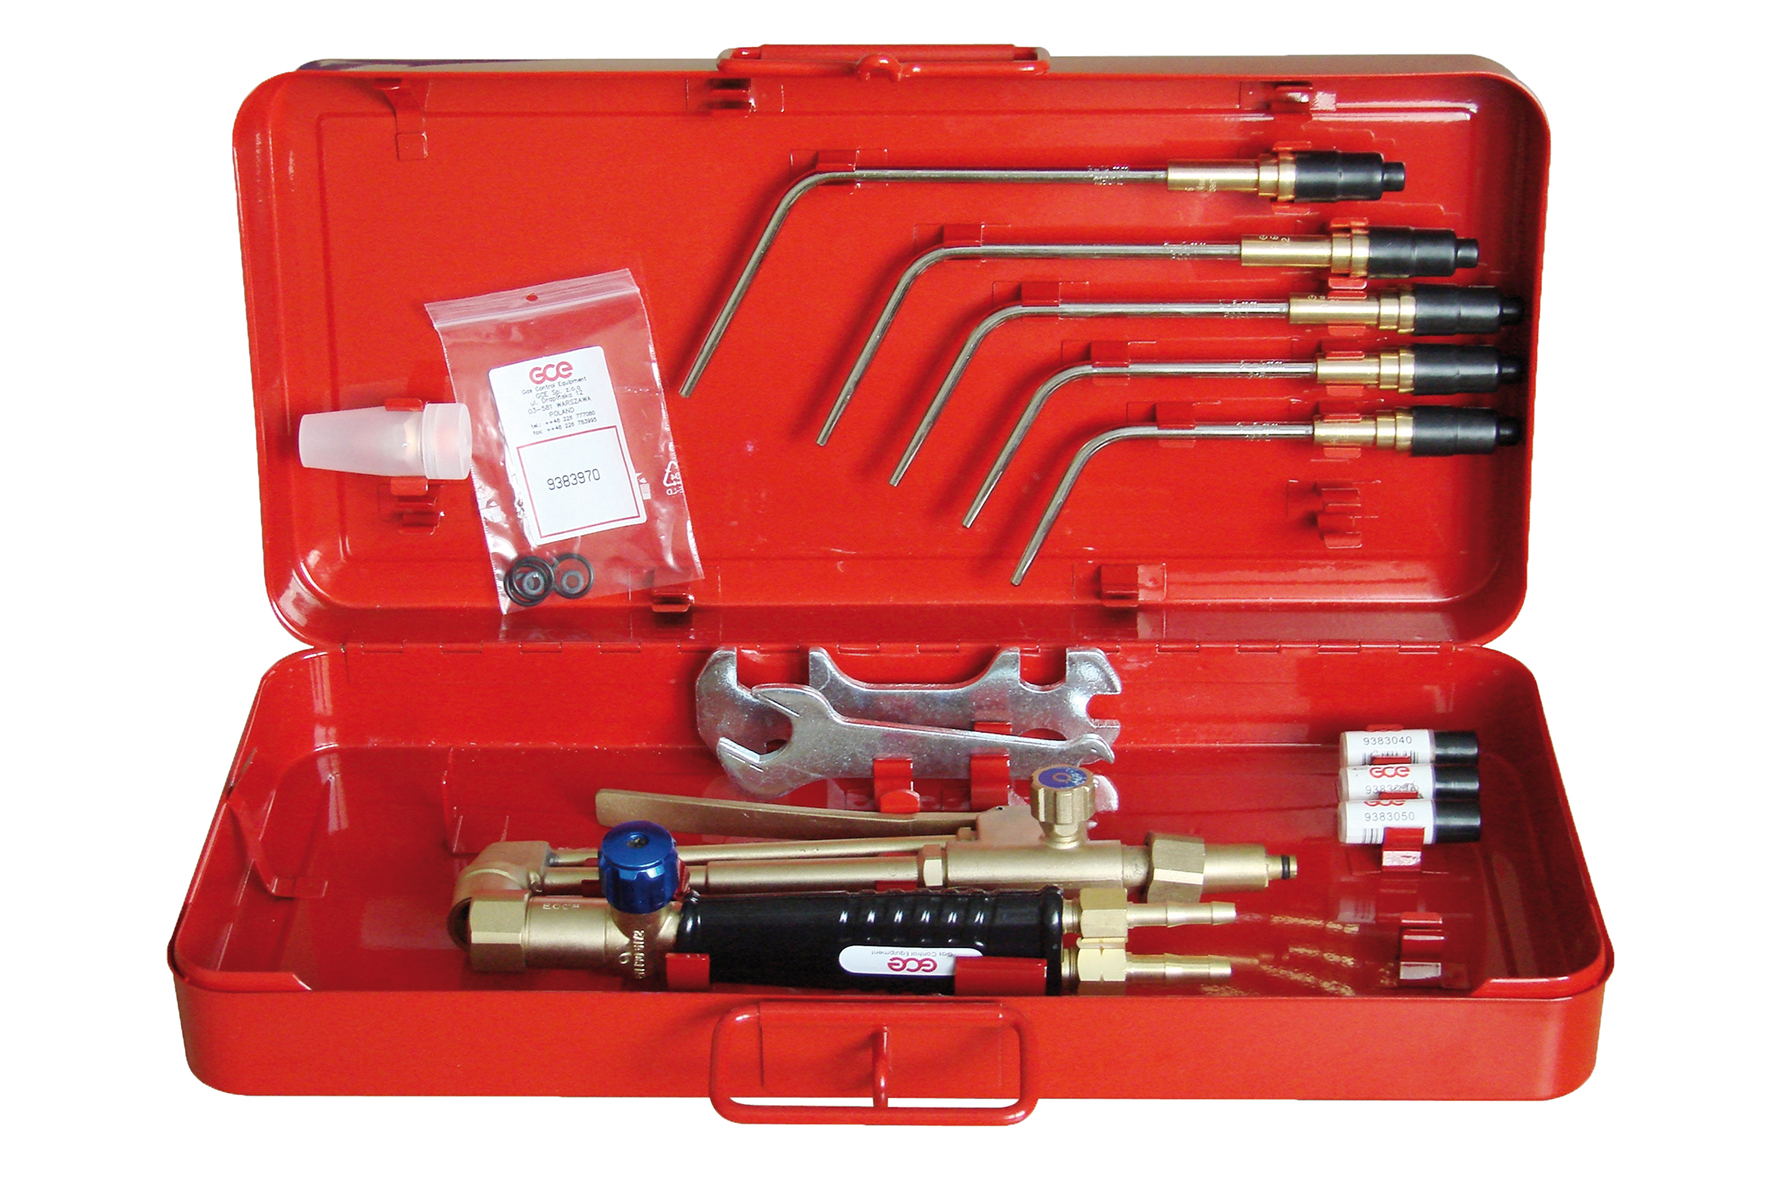 CUTTING WELDING SET U7 ACE ECO page image